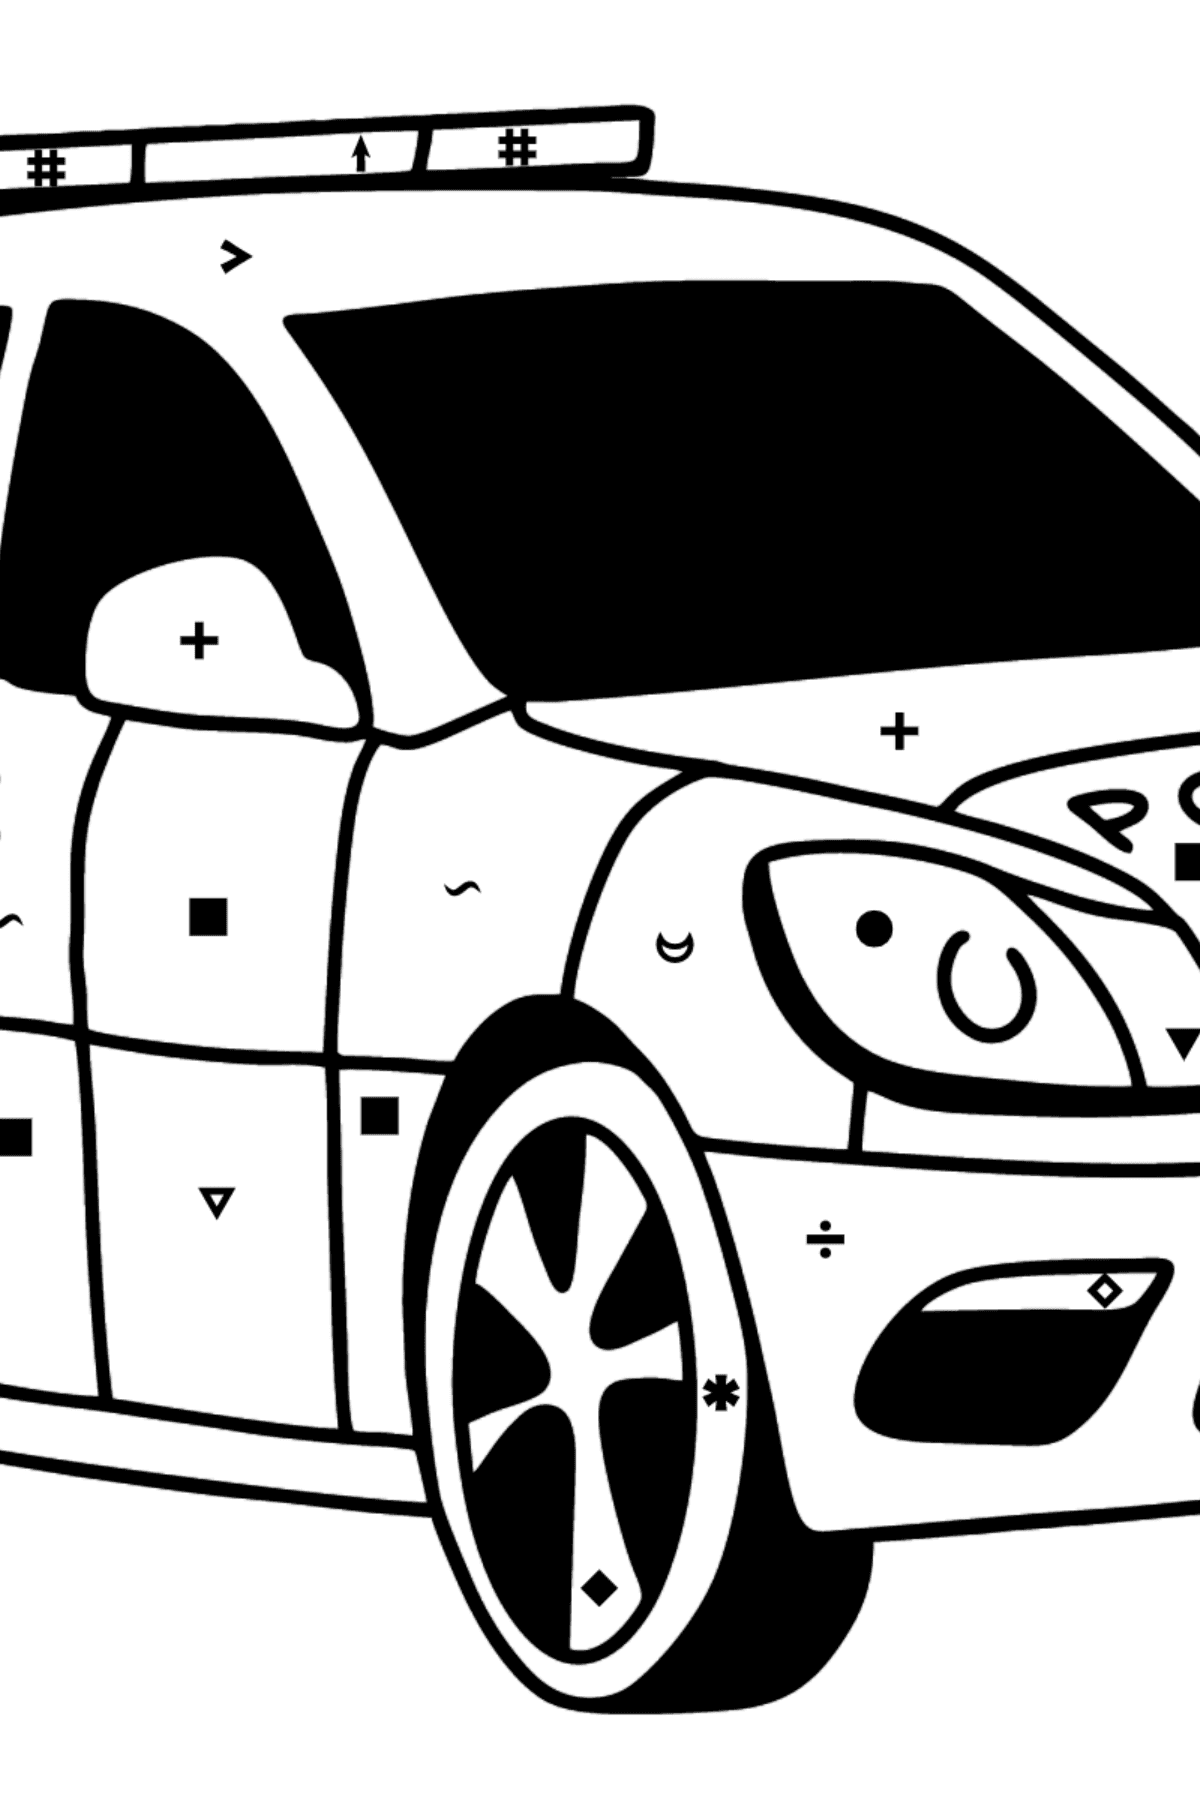 UK Police Car coloring page - Coloring by Symbols for Kids